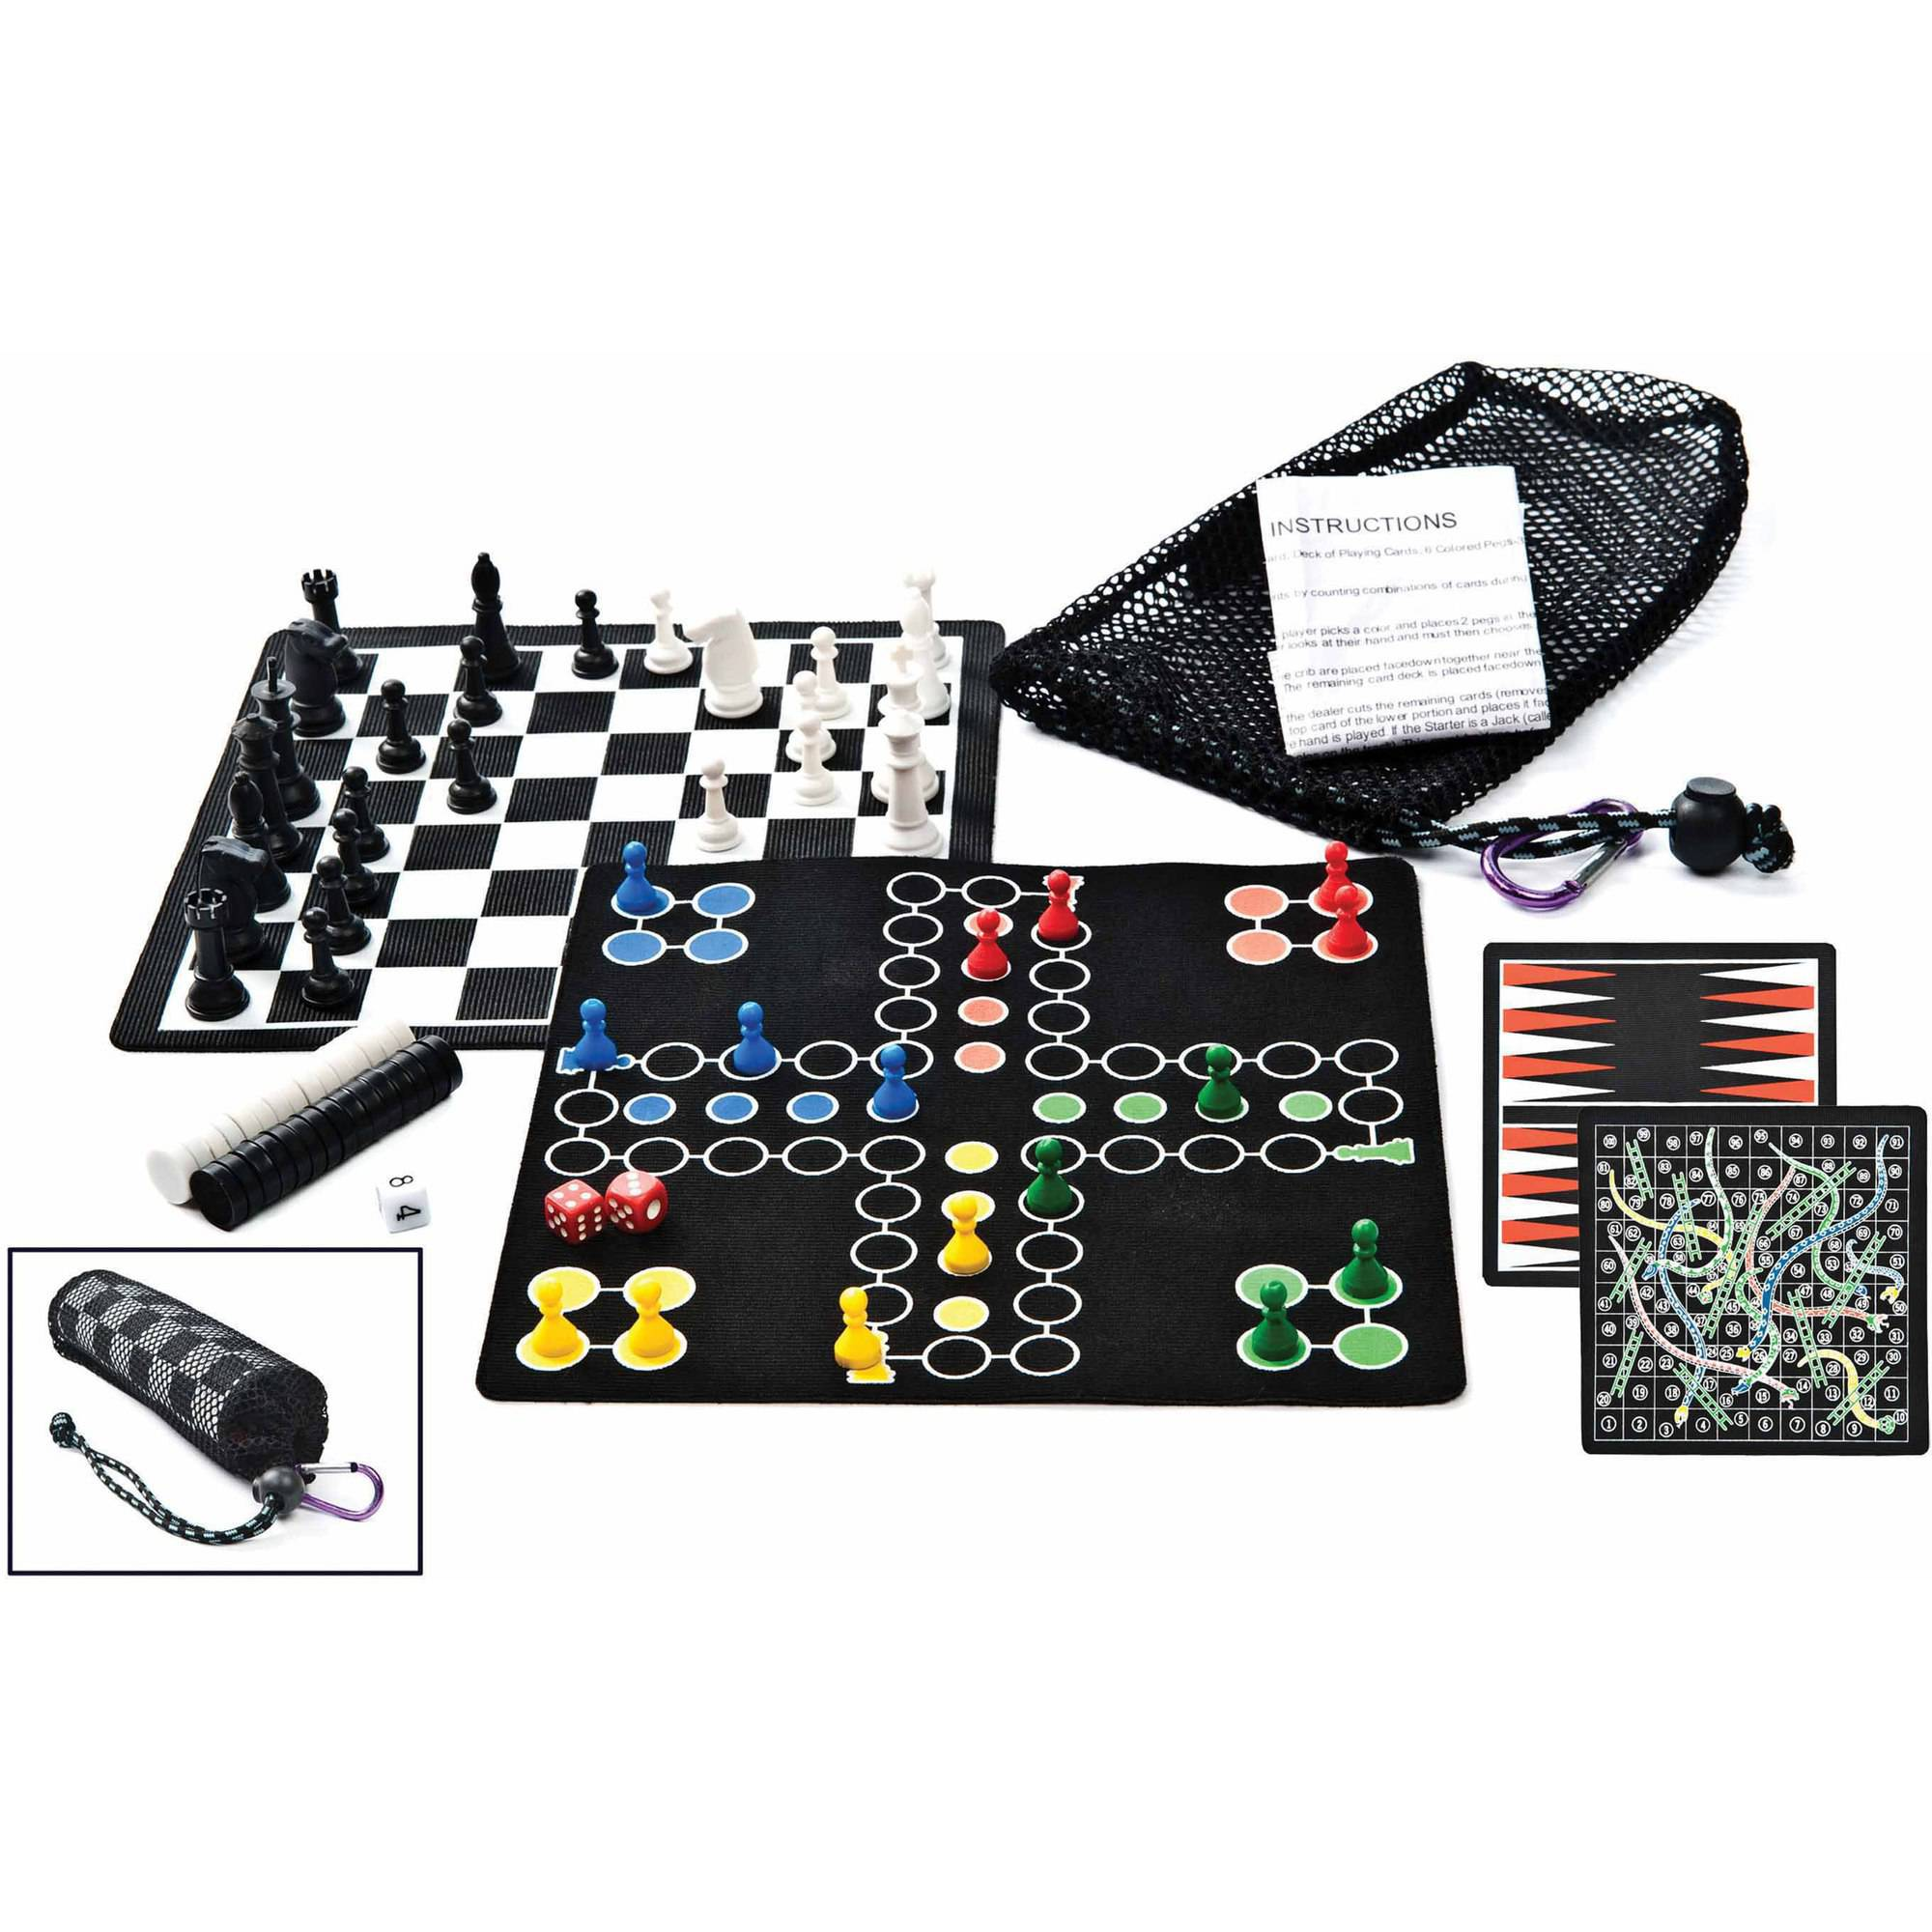 GSI Outdoors Roll-Up 5-in-1 Game Set